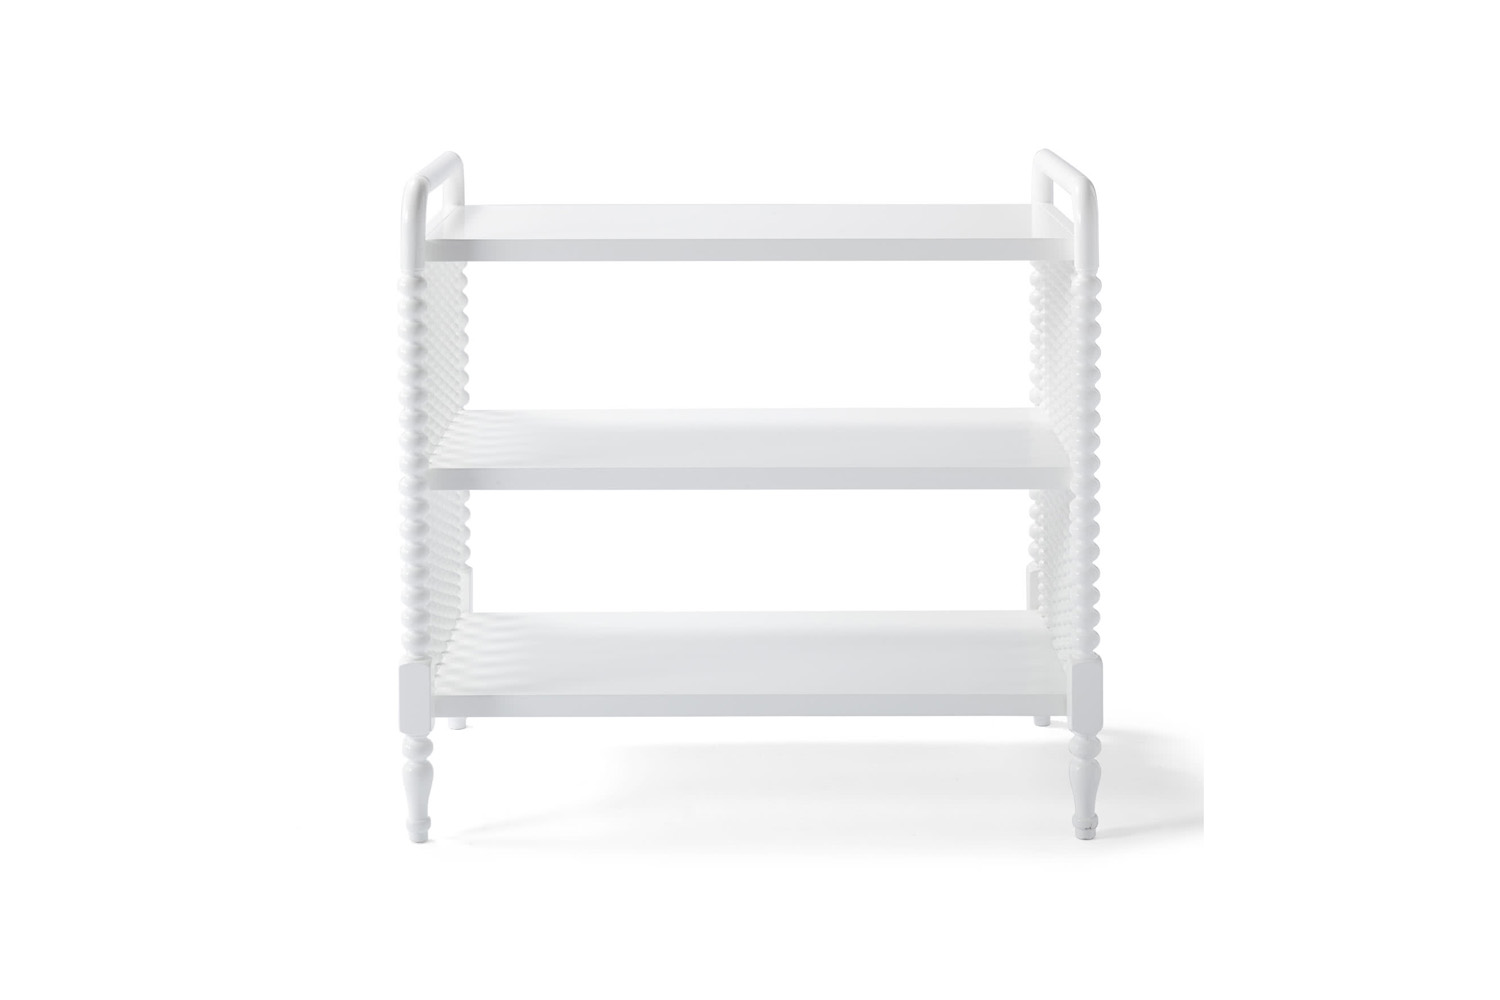 the serena & lily webster changing table is \$998. 12